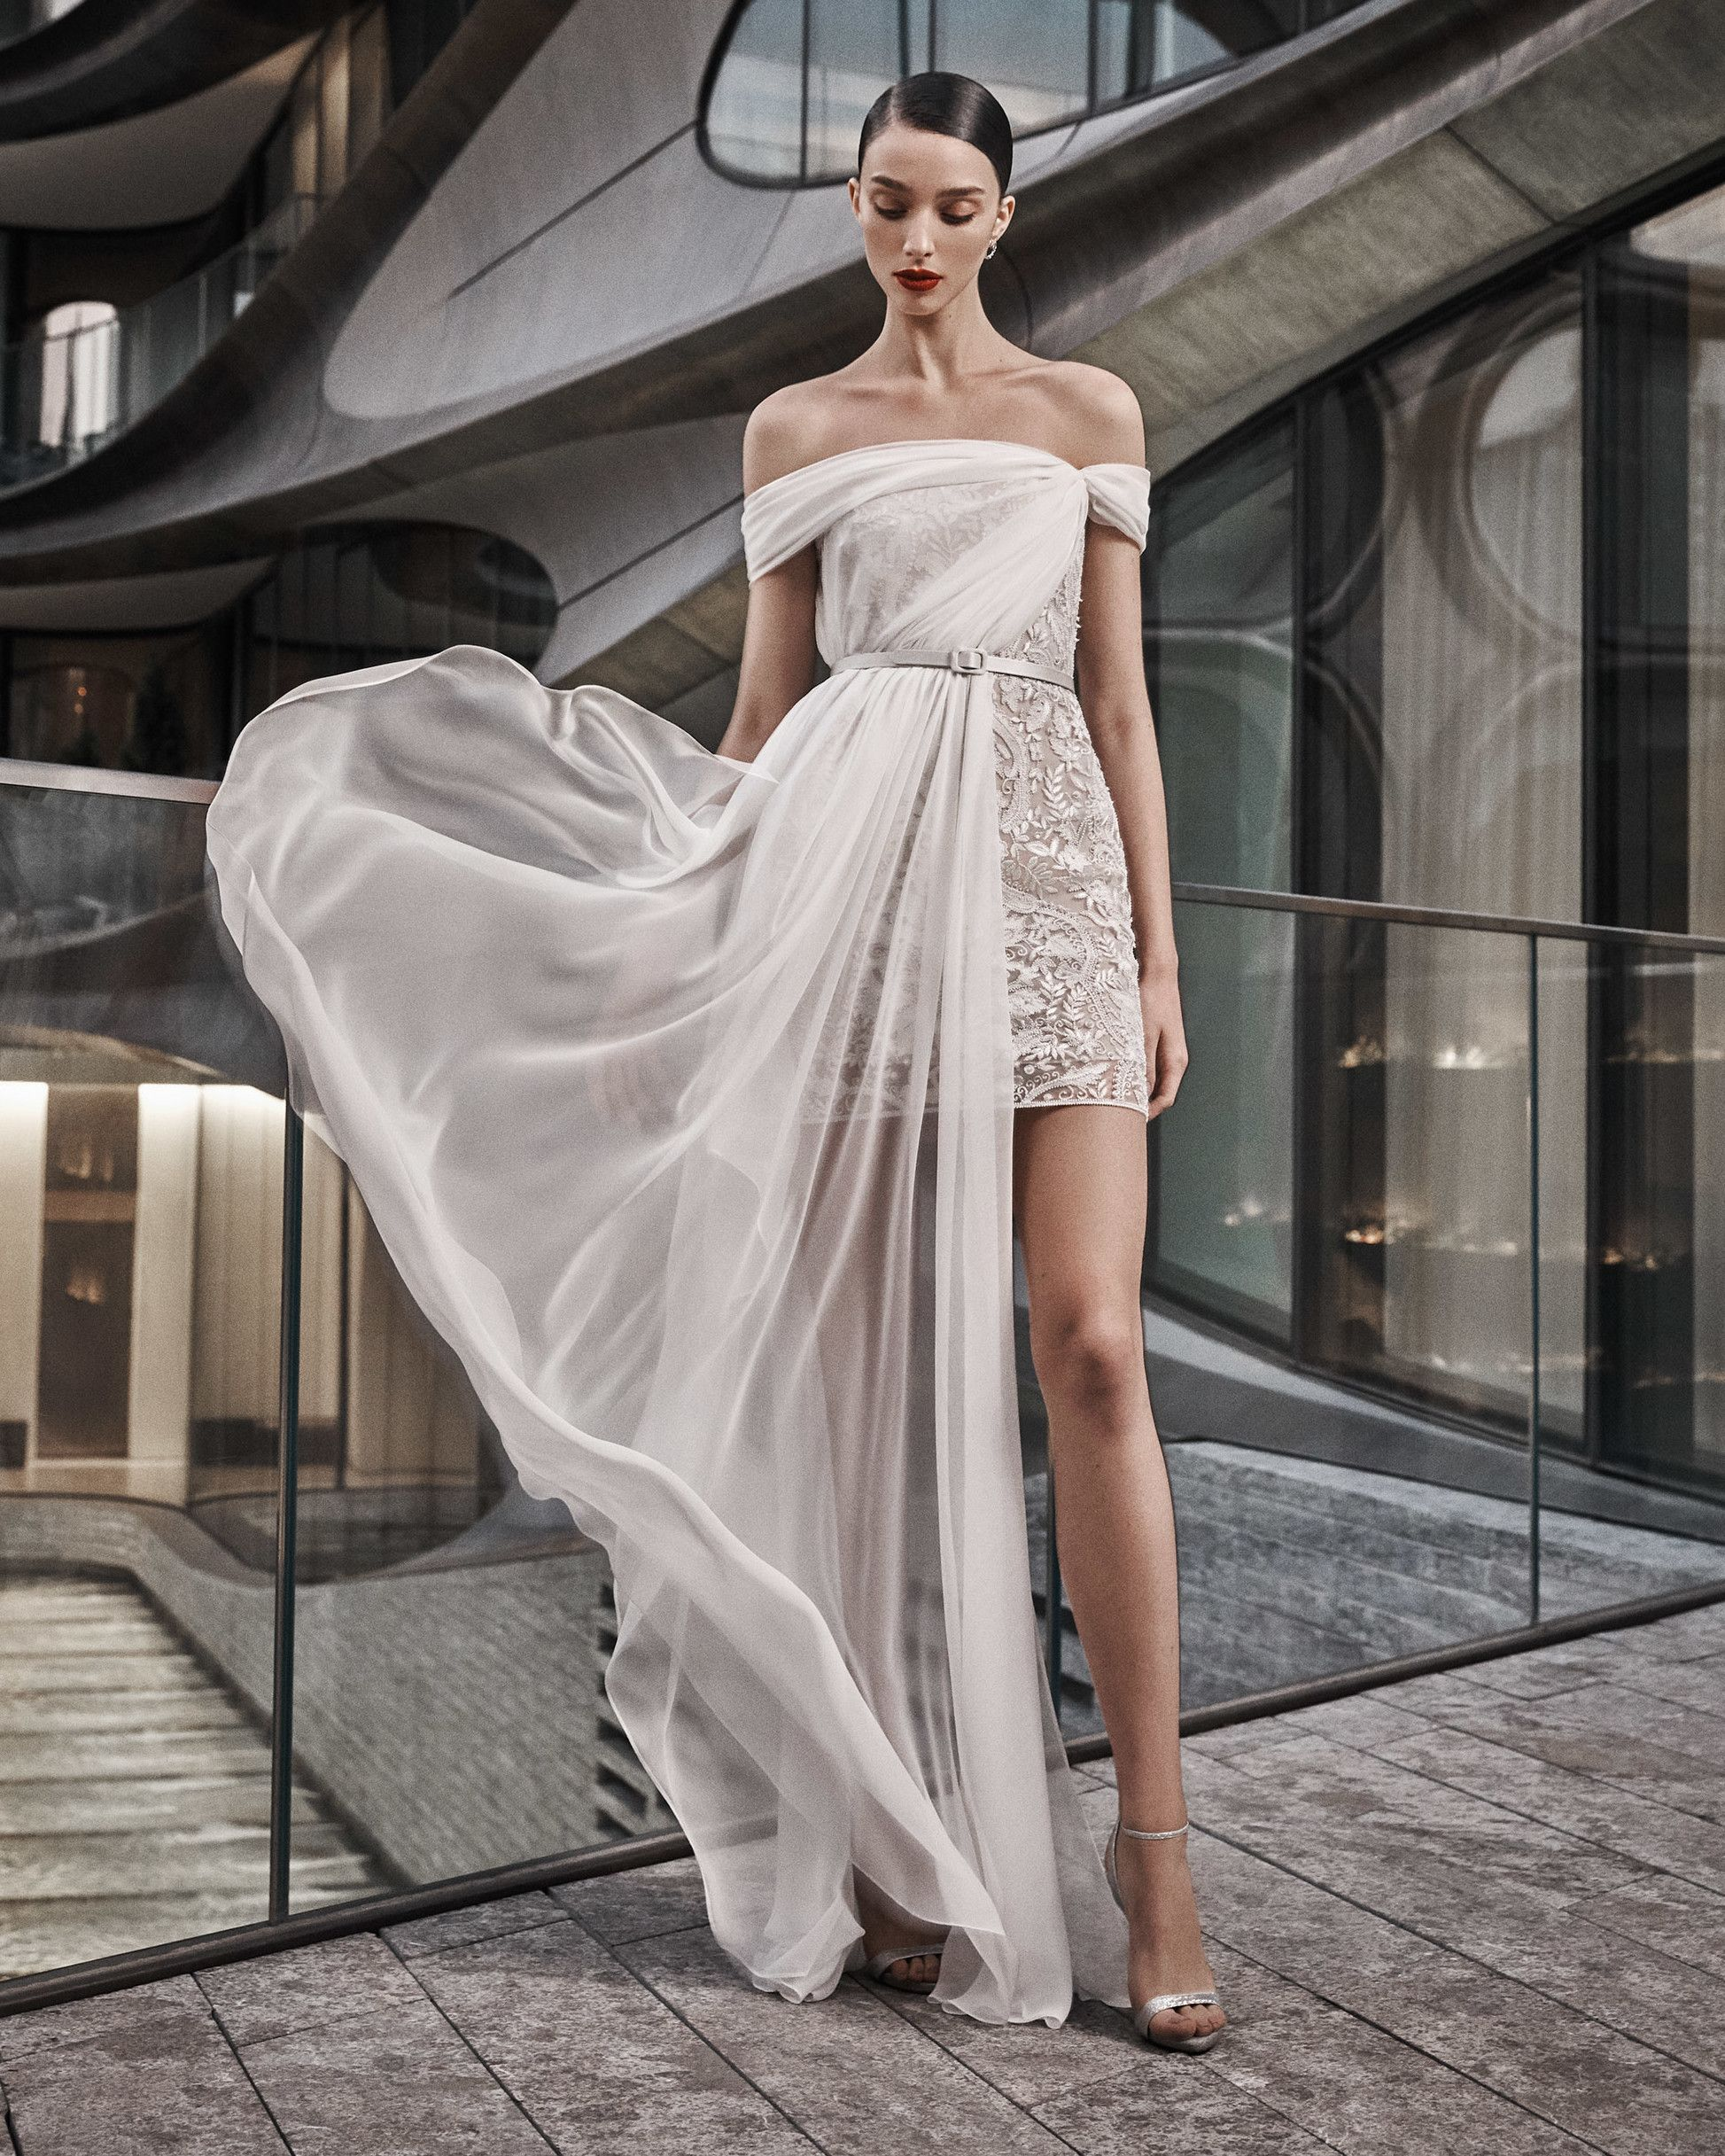 Naeem Khan 2019 Lace Cocktail Wedding Dress With Off The Shoulder Neckline And Asymmetrically Draped Ov Naeem Khan Bridal Short Wedding Dress Wedding Dresses [ 2433 x 1947 Pixel ]